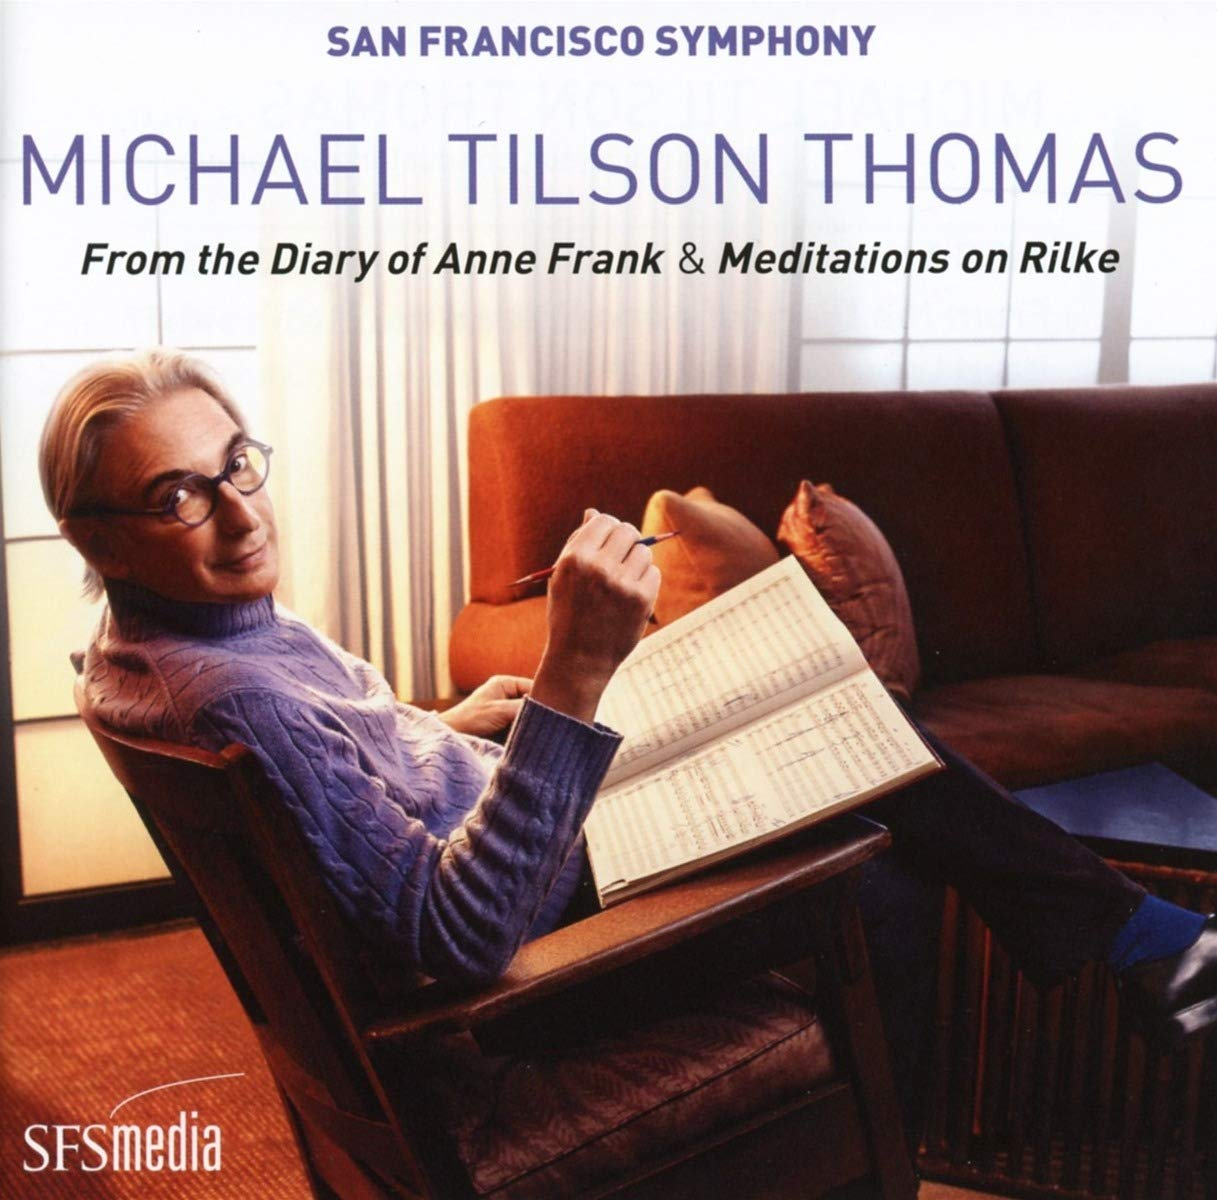 Michael Tilson Thomas: From the Diary of Anne Frank & Meditations on Rilke